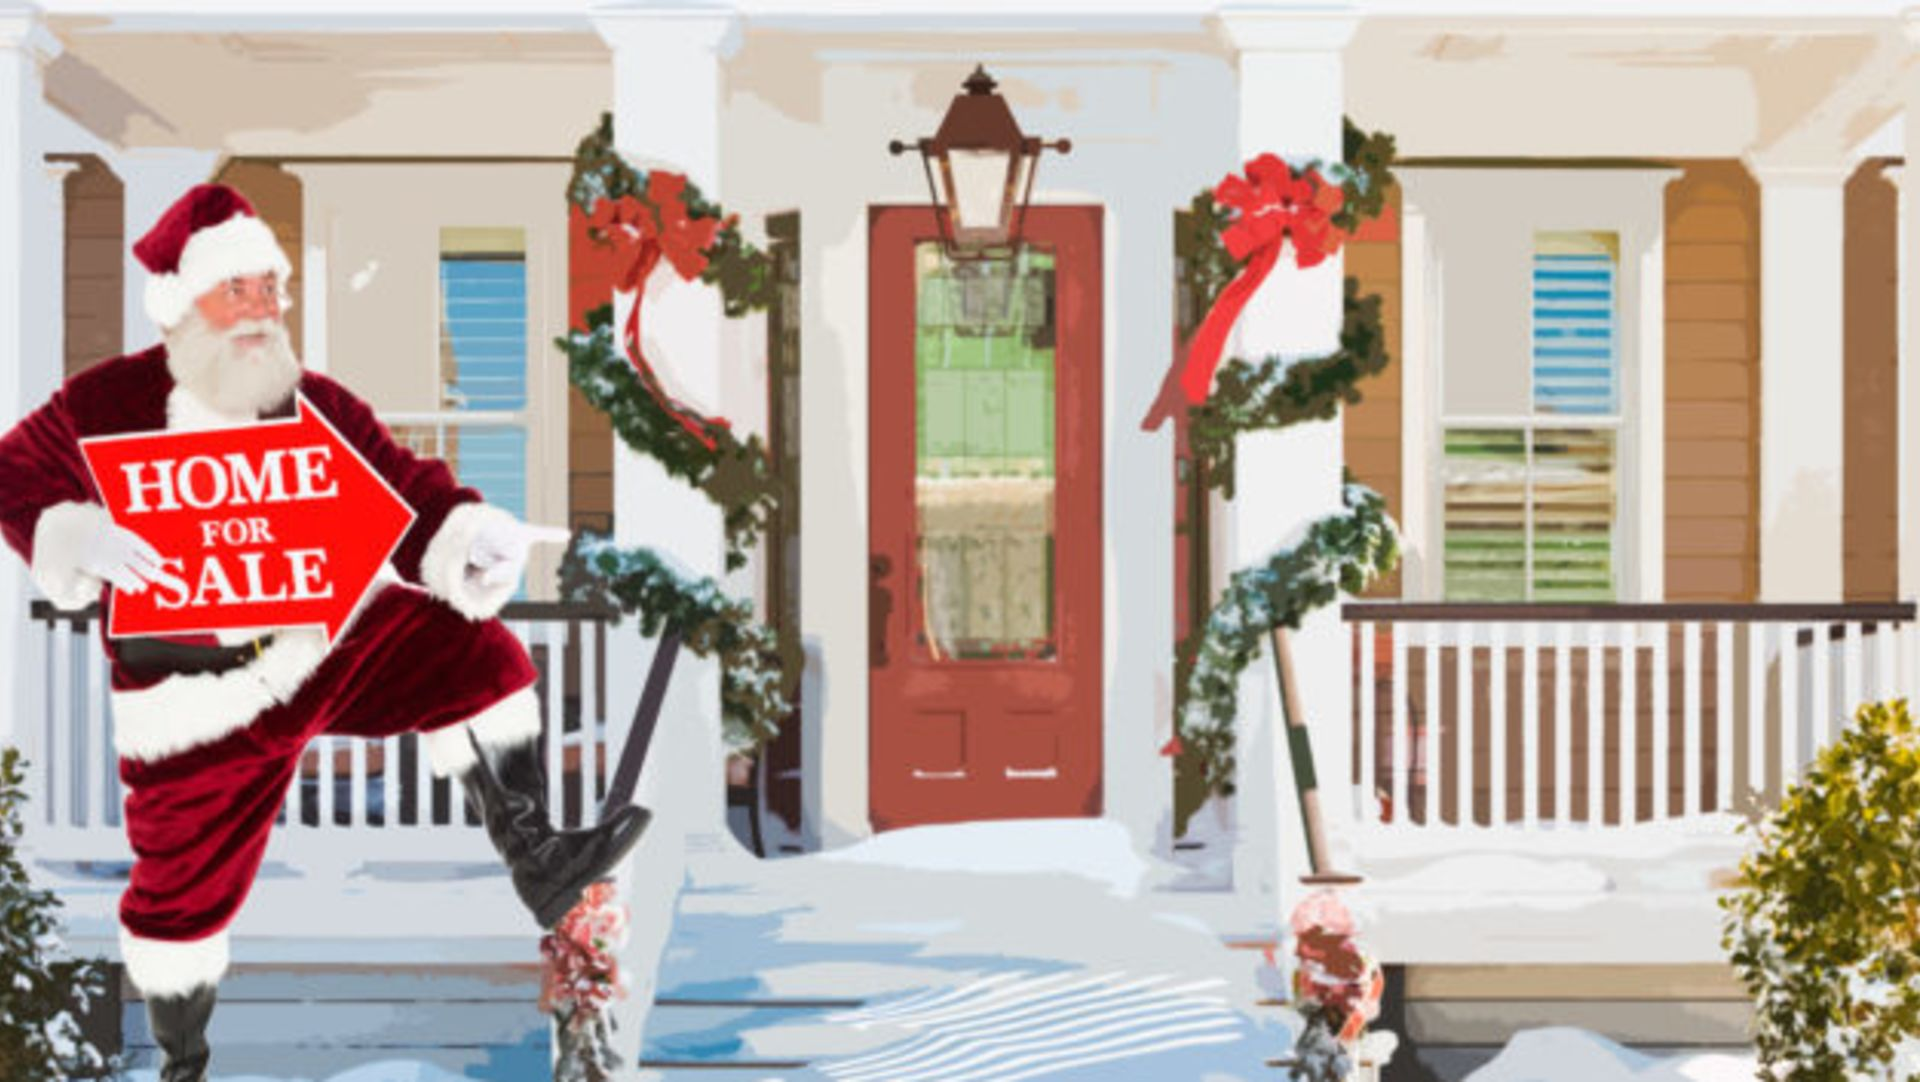 5 Surprisingly Smart Reasons to Buy a Home During the Holidays